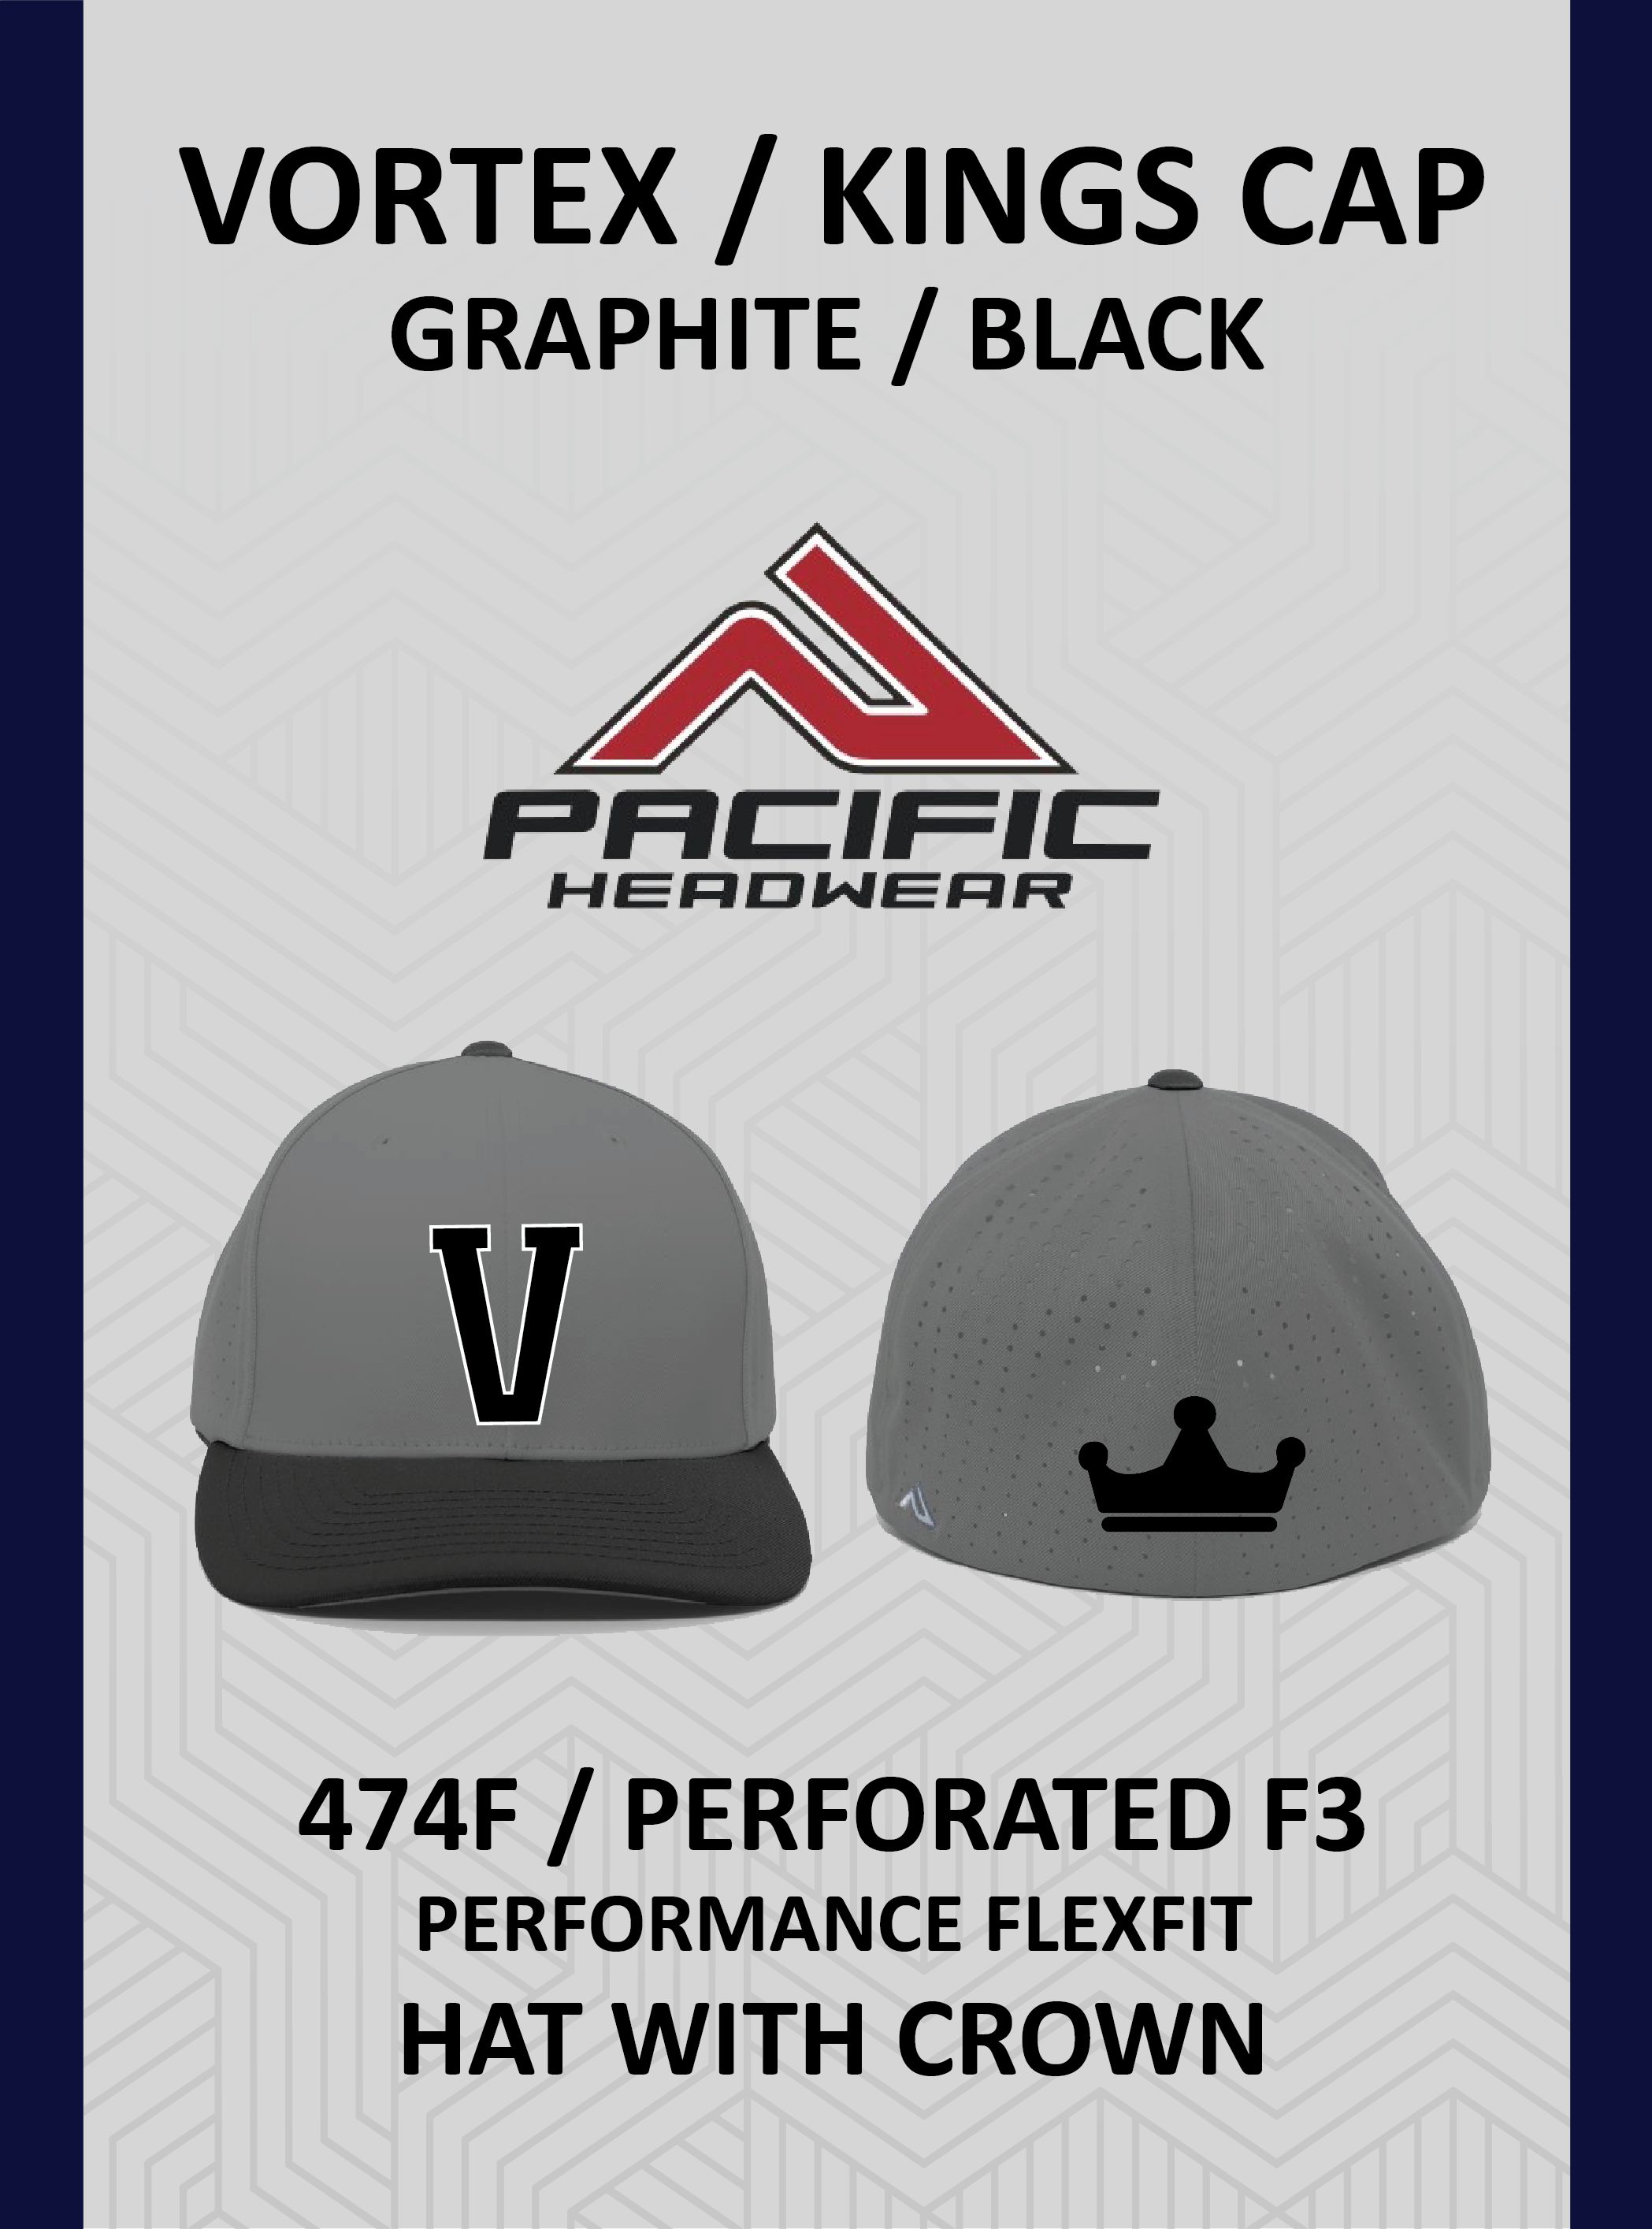 Vortex / Kings 474F Cap Graphite Black with Crown